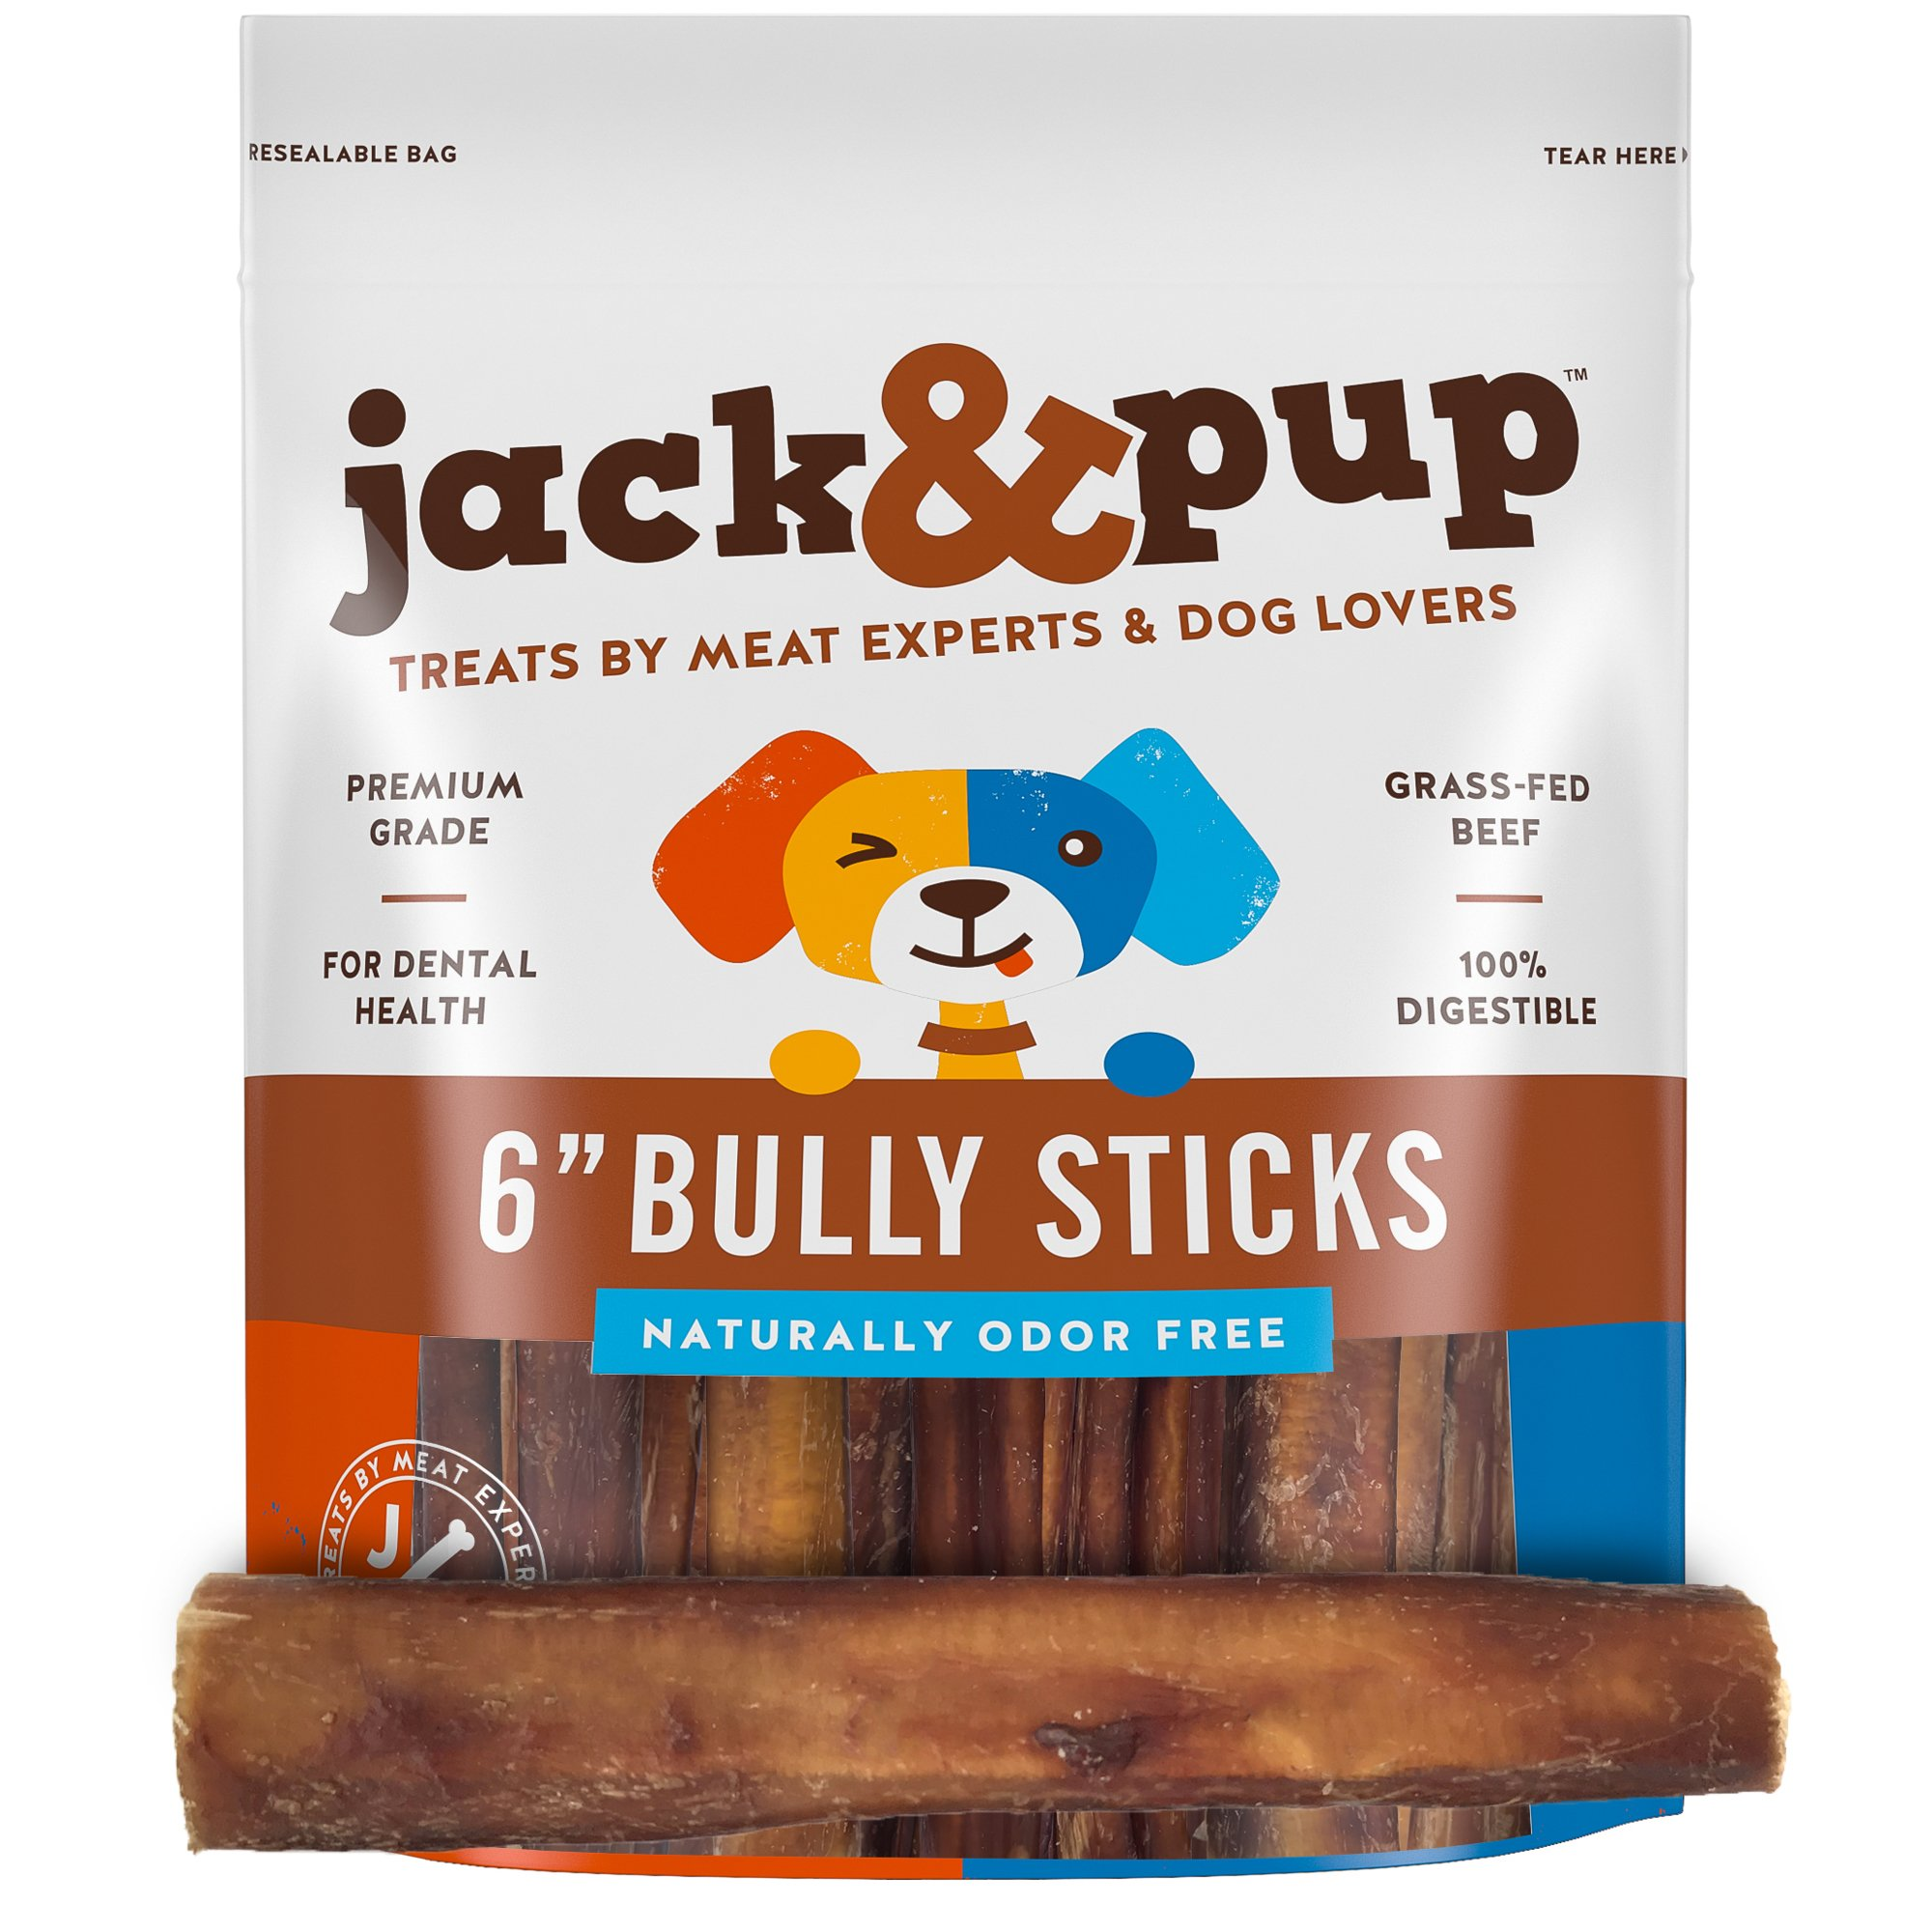 Jack&Pup 6-inch Premium Grade Odor Free Bully Sticks Dog Treats [Thick], (40 Pack) - 6'' Long All Natural Gourmet Dog Treat Chews - Fresh and Savory Beef Flavor - 30% Longer Lasting by Jack & Pup